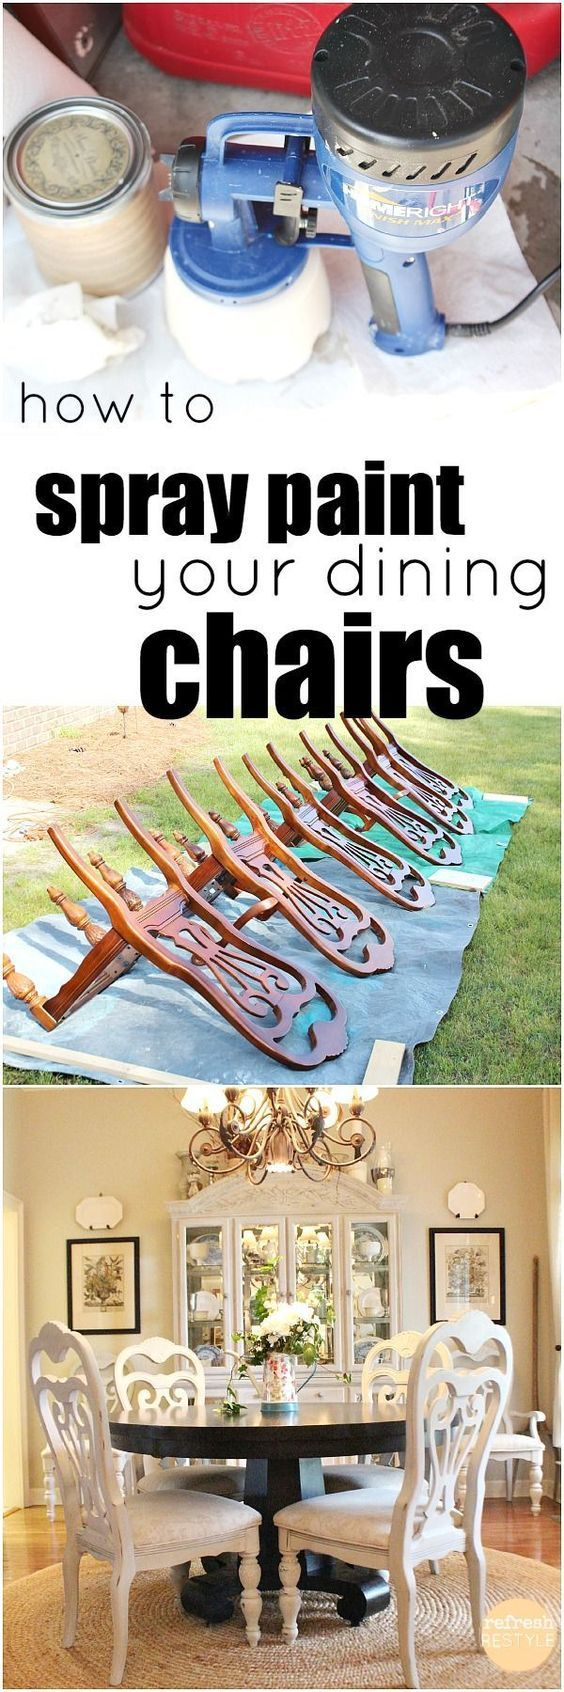 How to spray paint dining chairs #homerightspraymax #diyproject #paintedfurniture